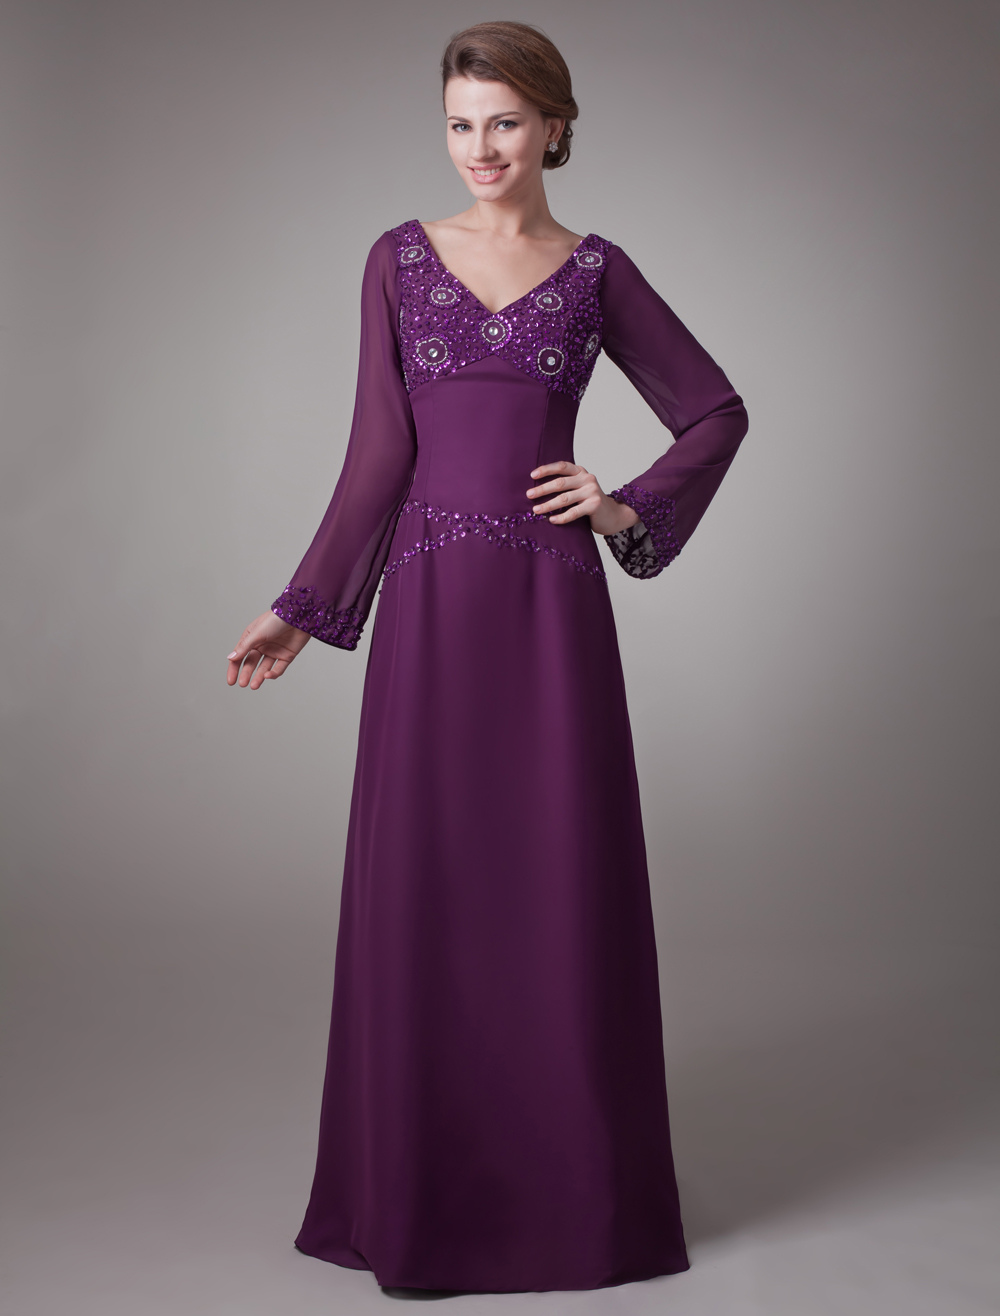 Buy Grape A-line Charming Mother of the Bride Dress with V-Neck Sequin Long Sleeves for $121.59 in Milanoo store